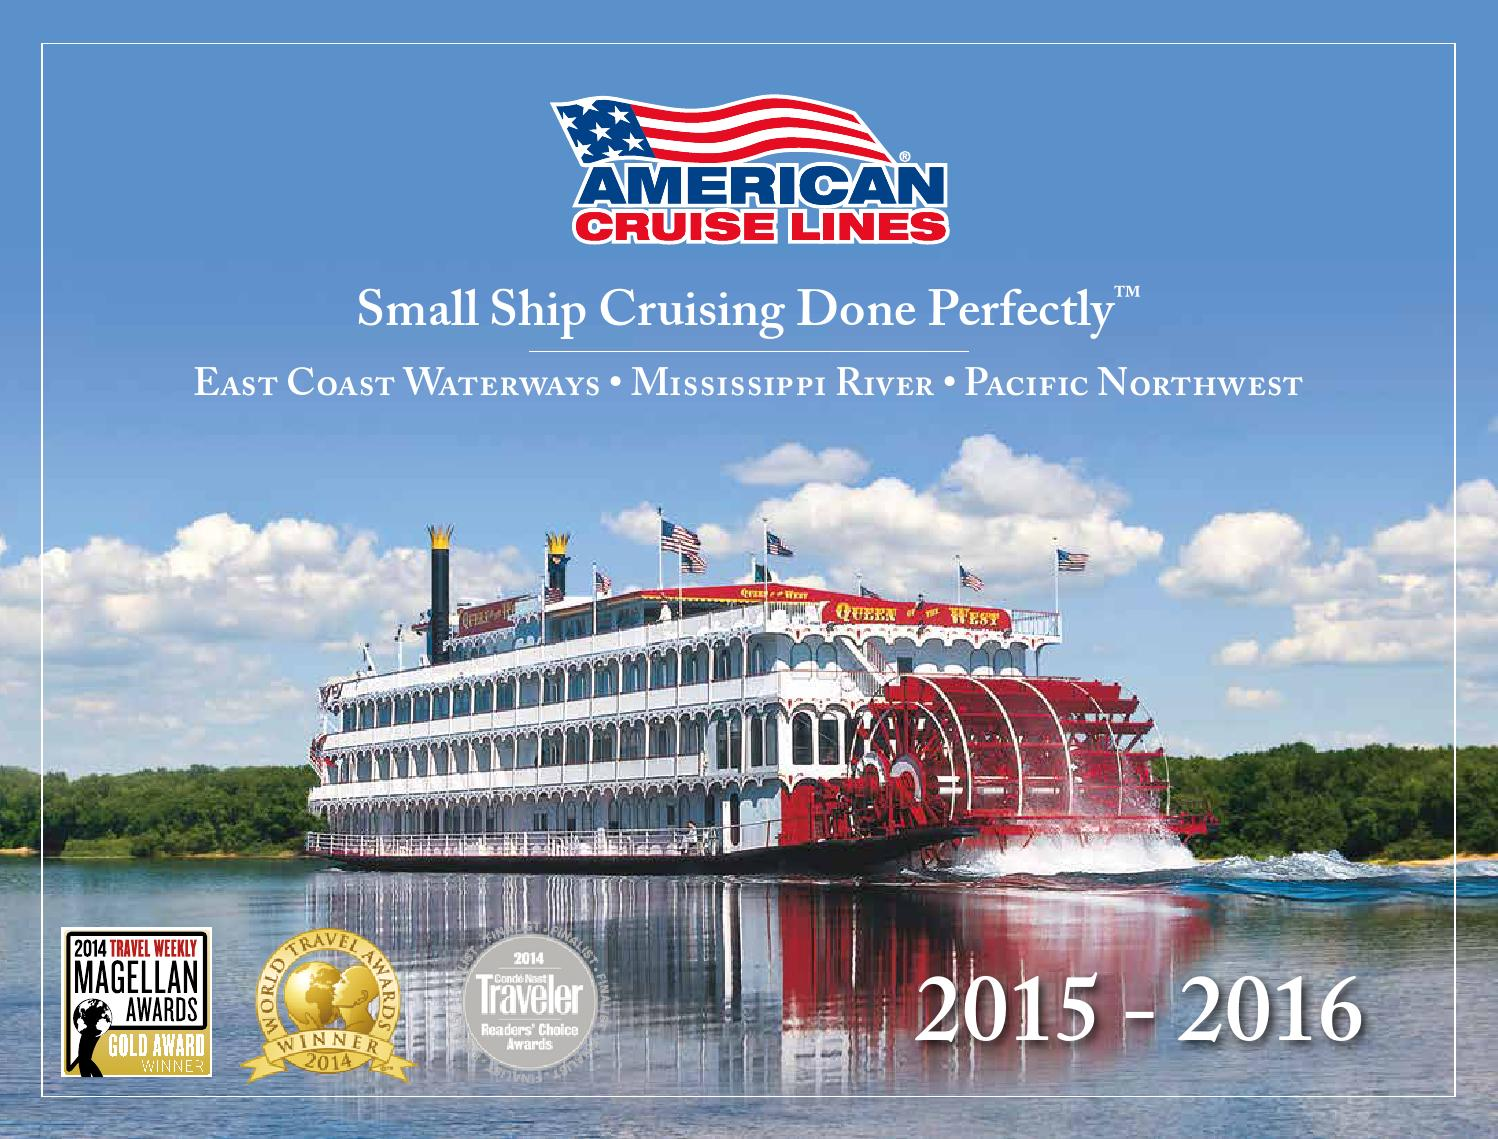 American Cruise Lines Brochure By American Cruise Lines Issuu